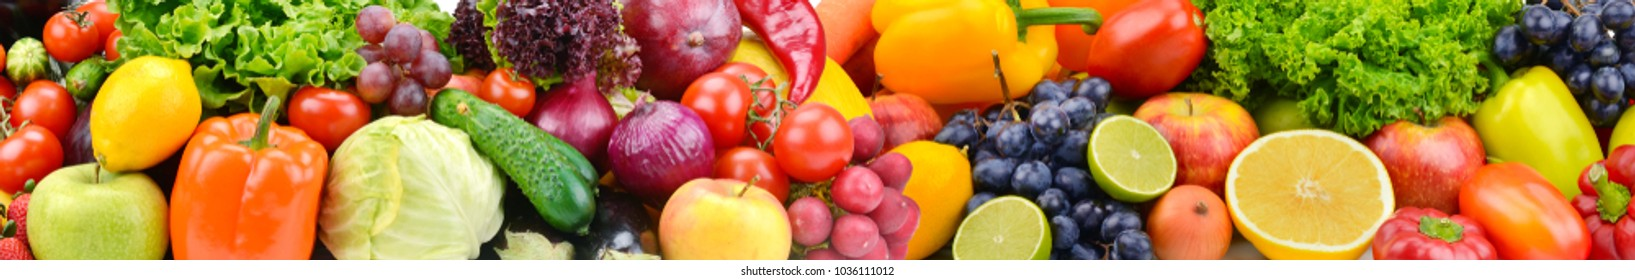 Panorama bright colorful vegetables and fruits. Food background.